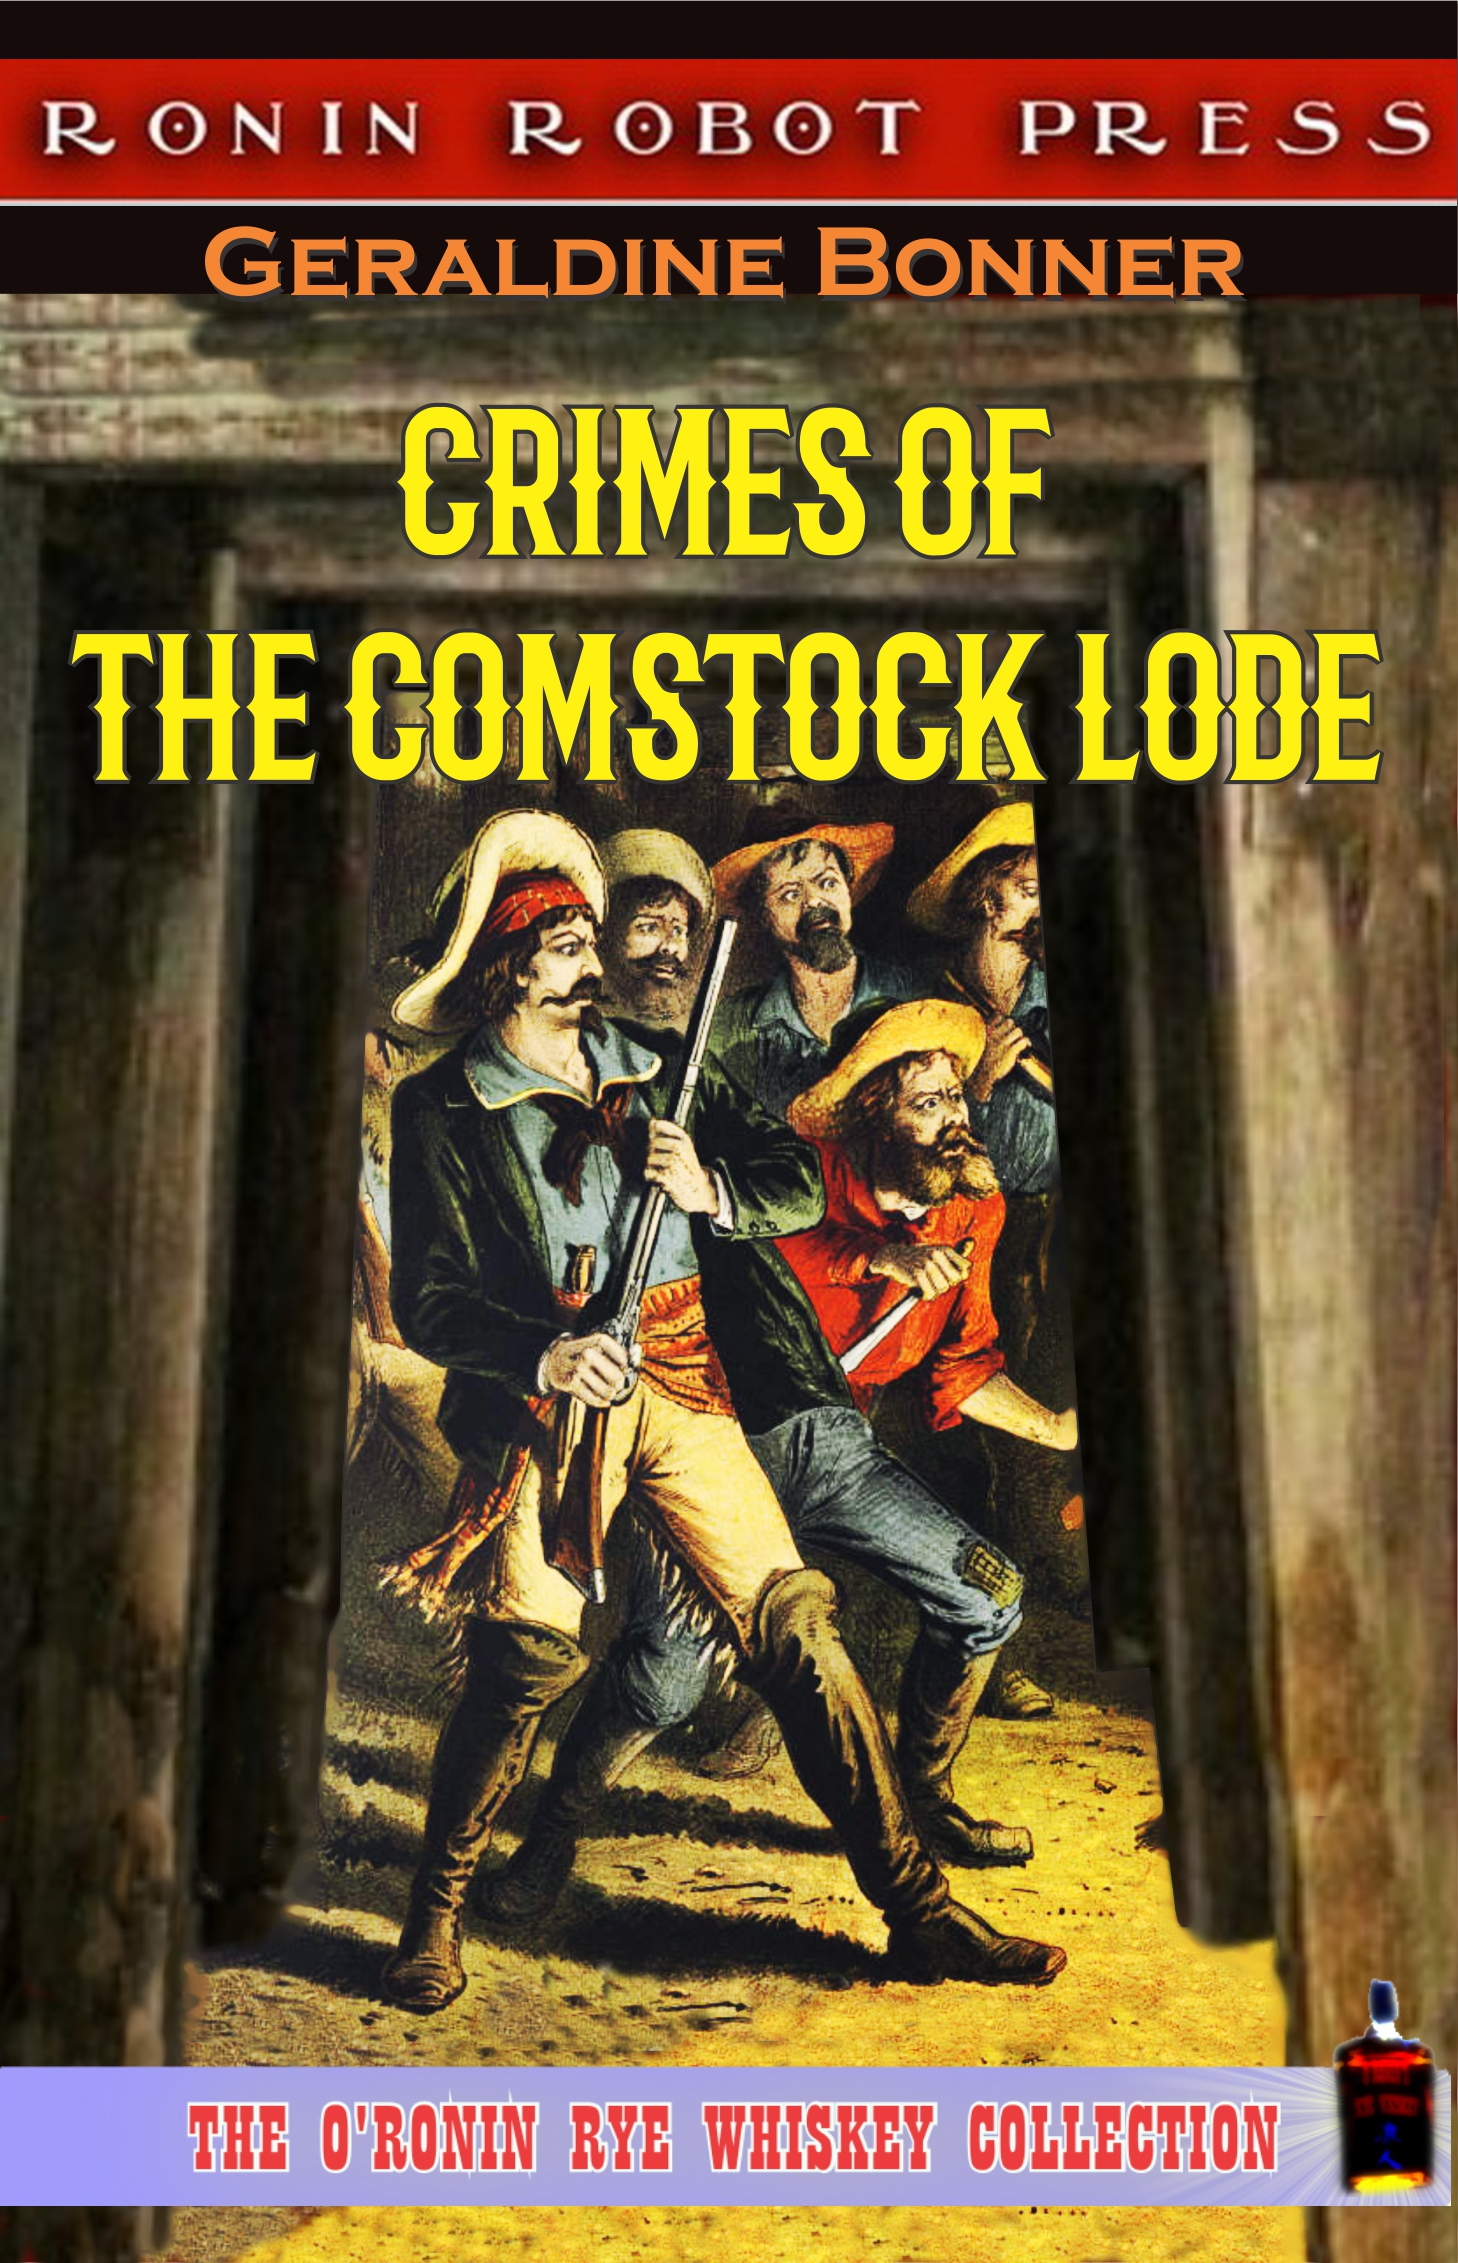 Crimes of the Comstock Lode